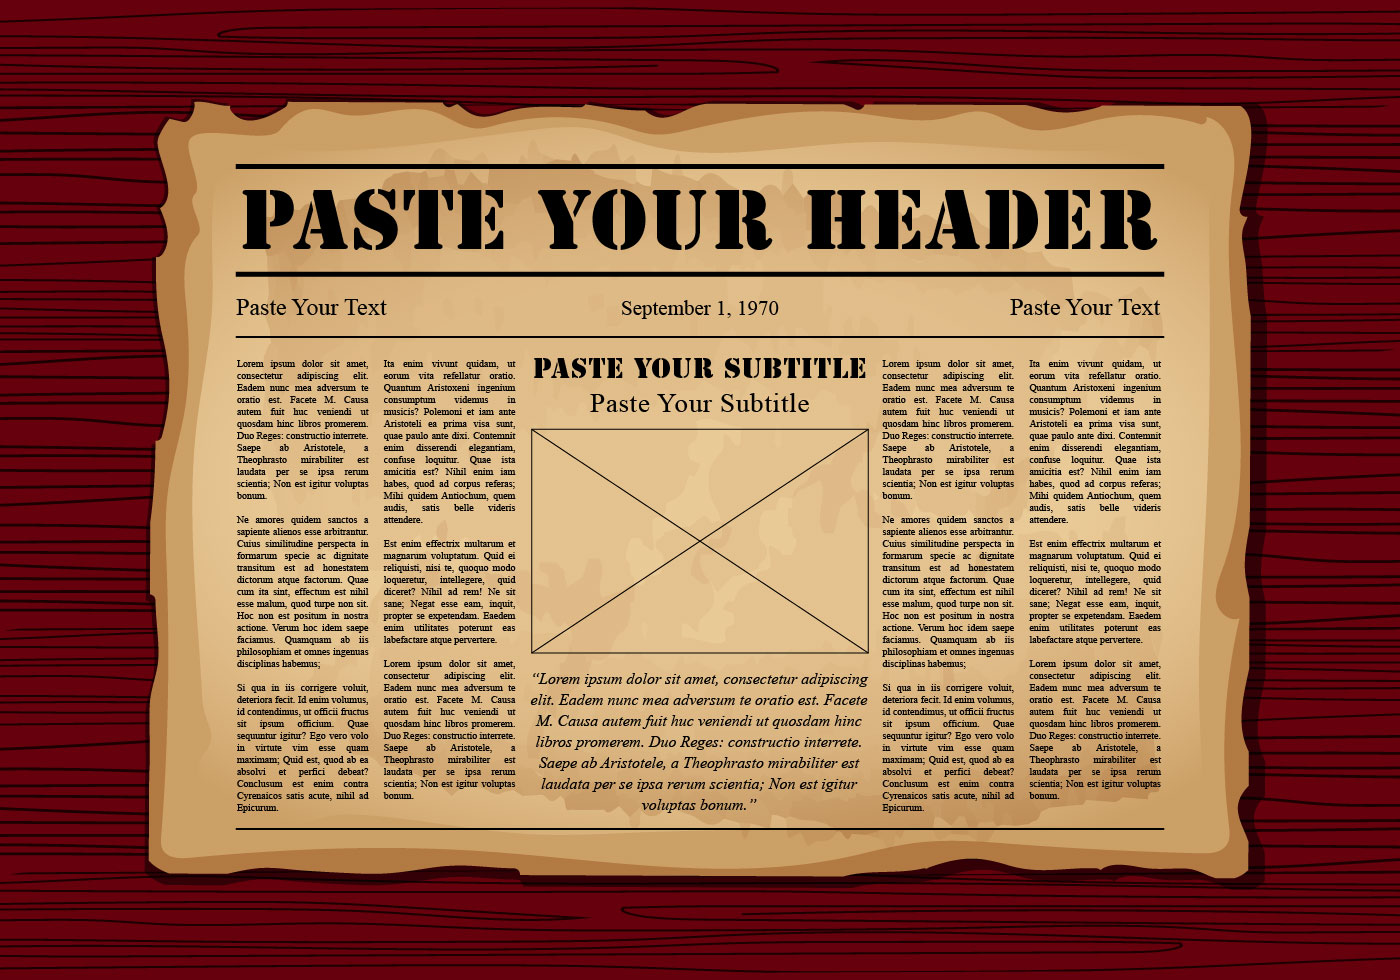 Old Newspaper - Download Free Vector Art, Stock Graphics ...